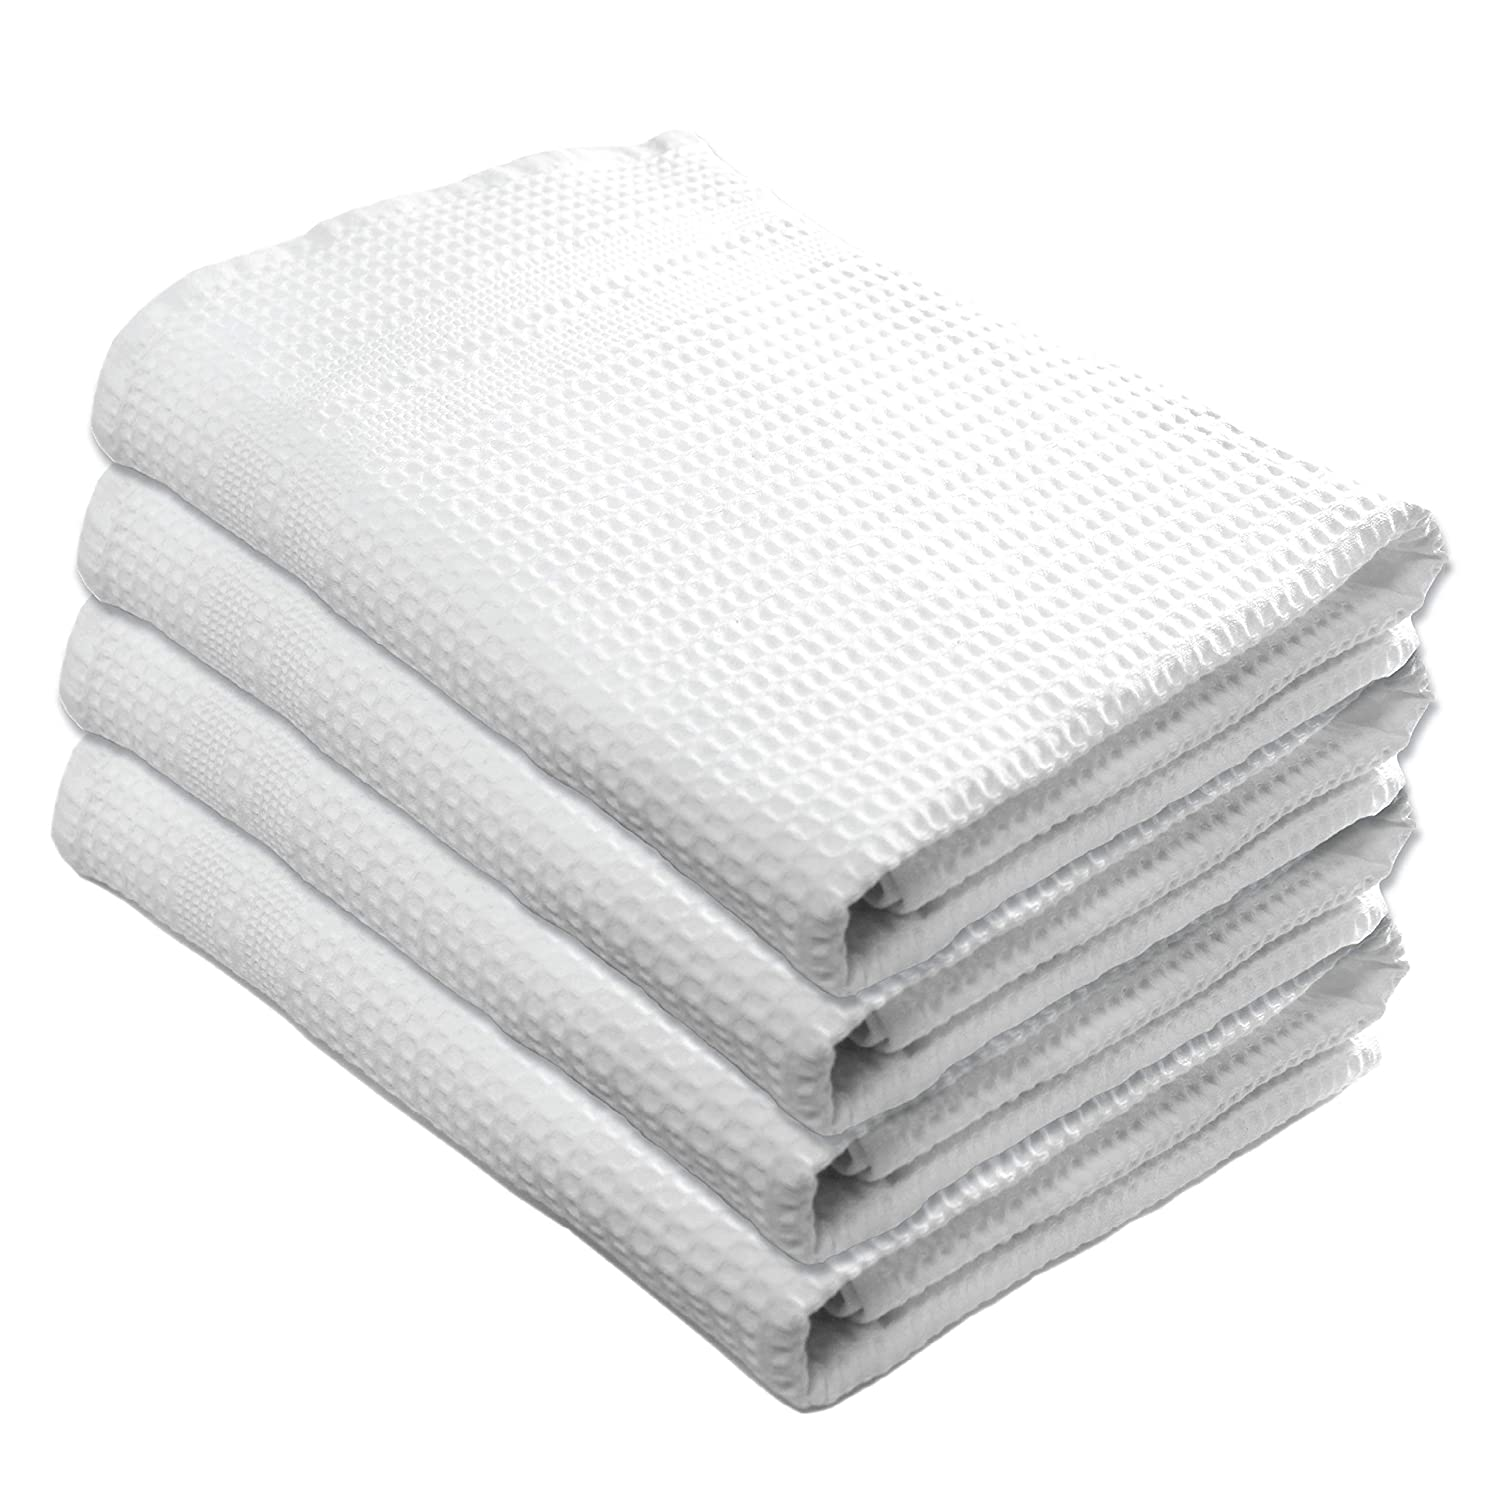 Gilden Tree Premium Bath Towels 4 Pc Set 100% Natural Cotton Quick Dry Waffle Weave Lint Free Soft Luxurious Fabric Solid Colors Oversized Thin Cloth Fade Resistant (White)